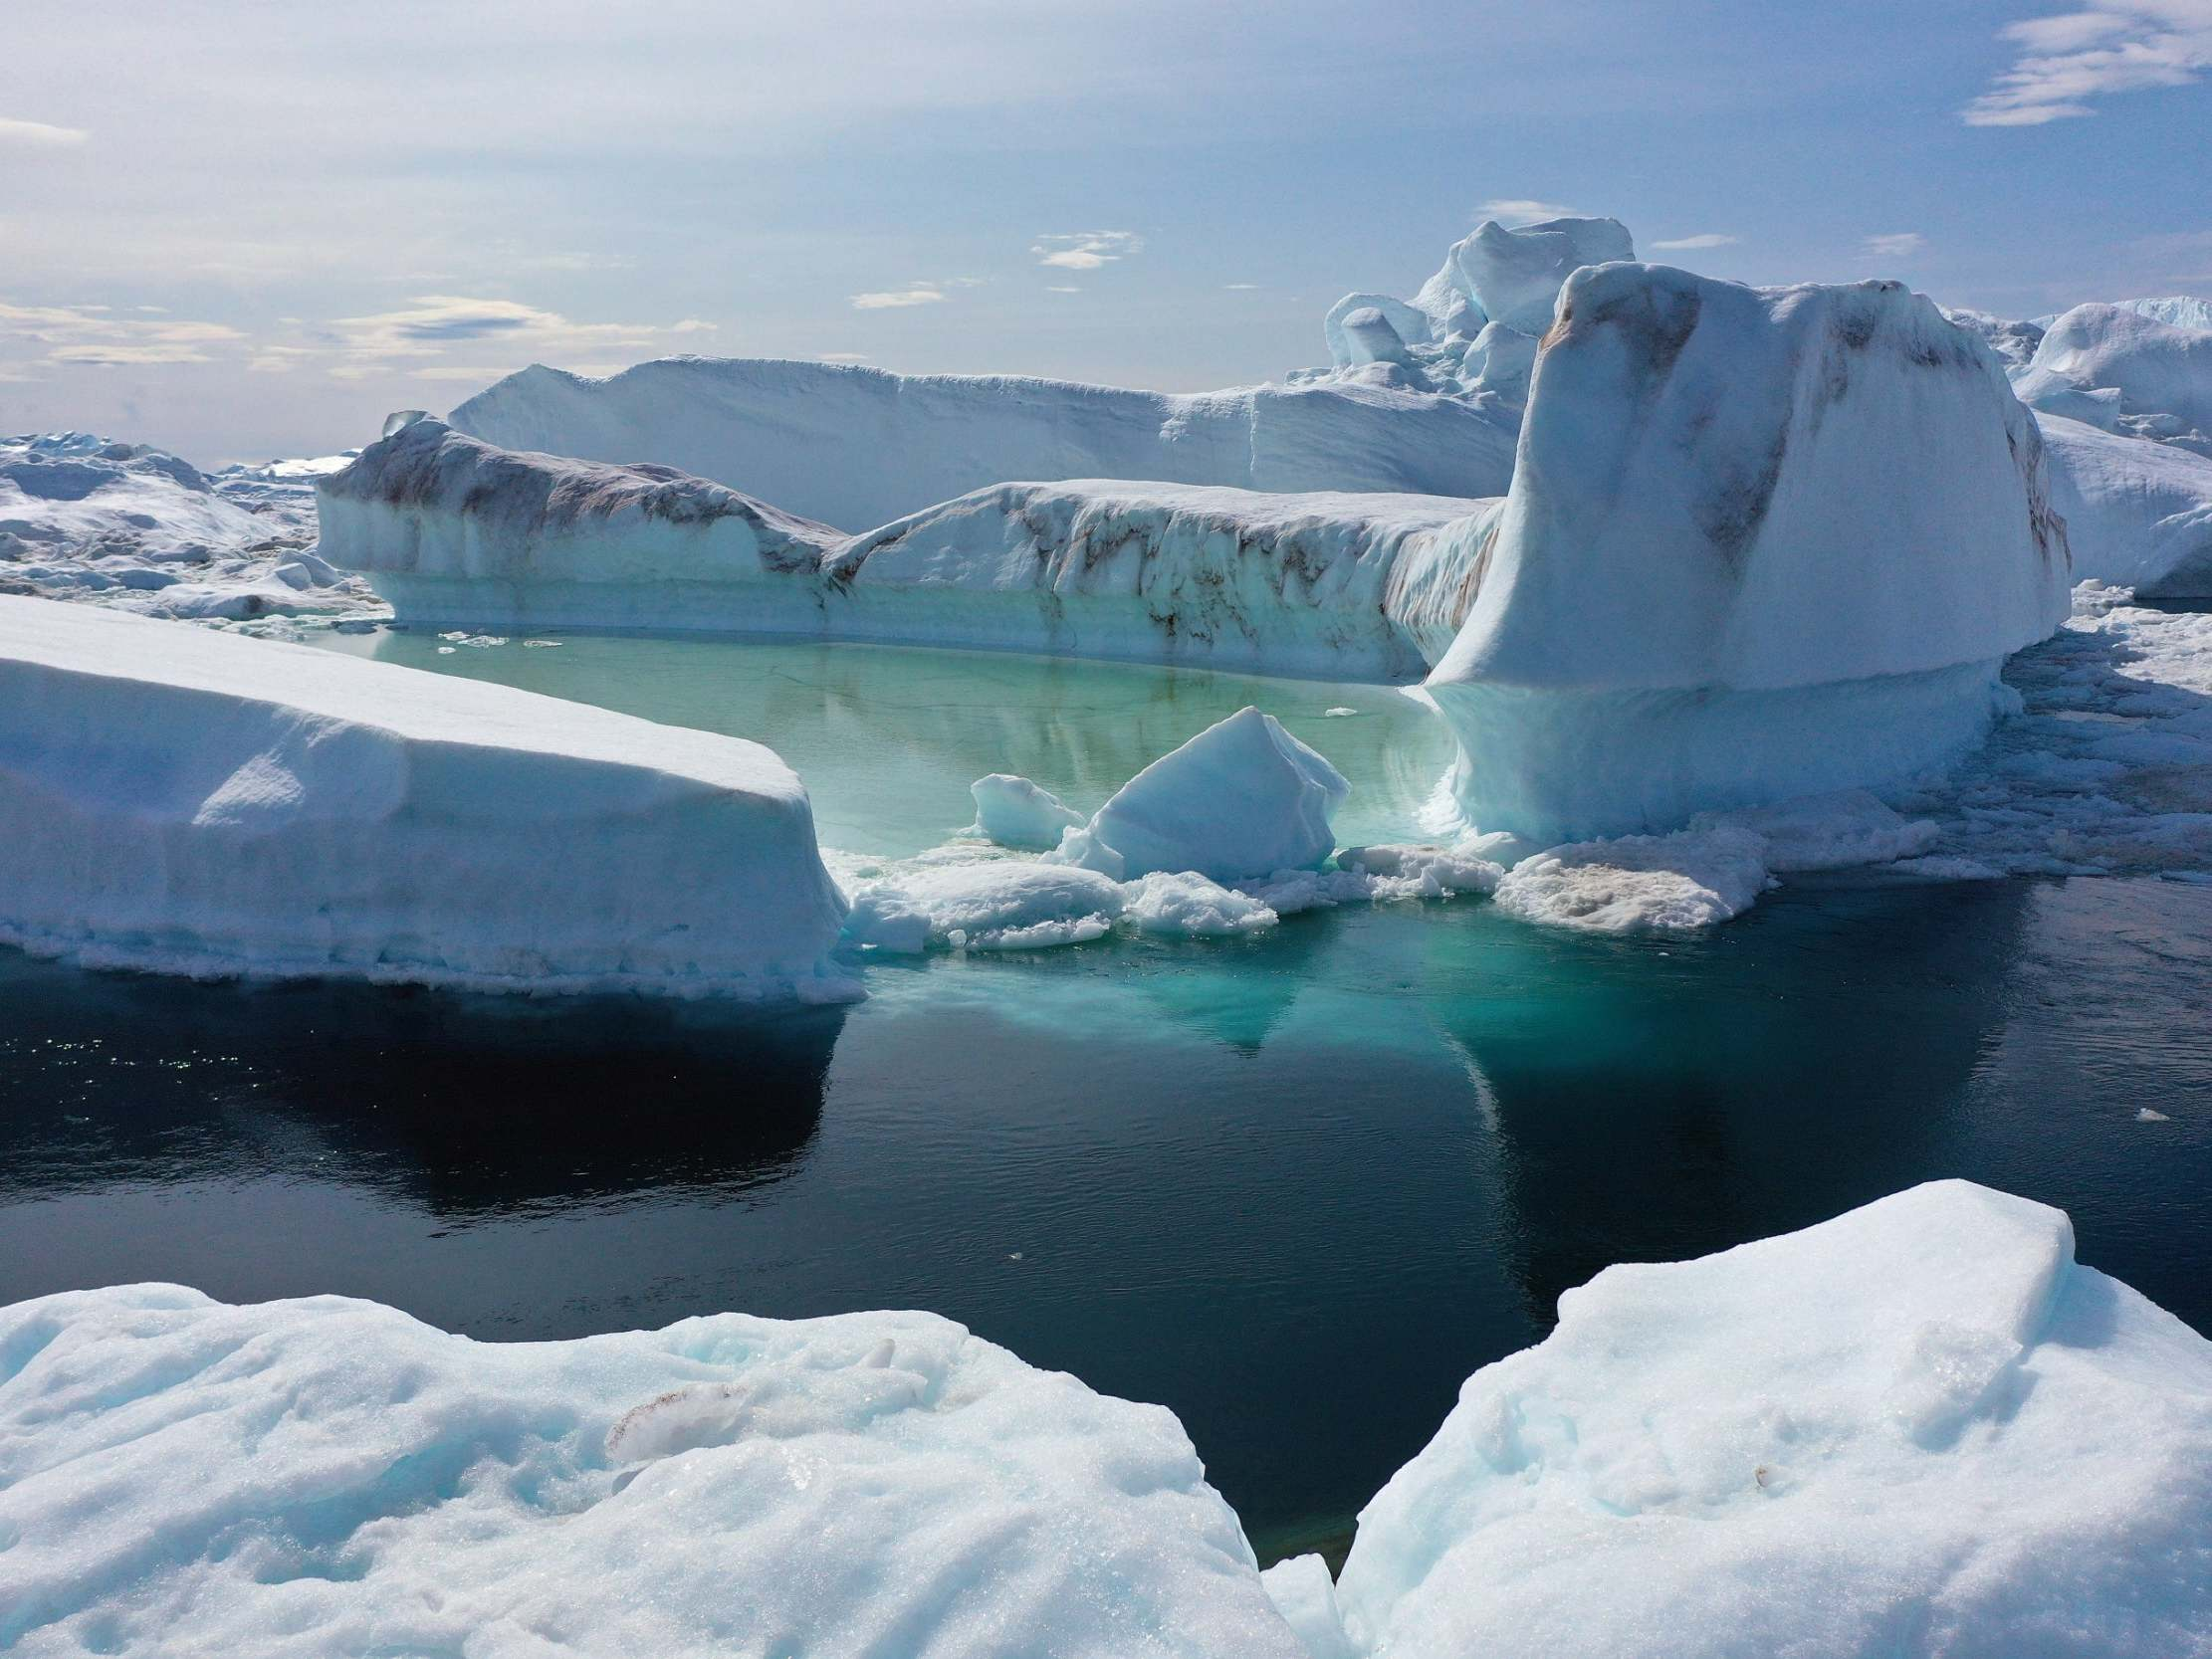 Greenland's ice sheet melting so fast it has caused global sea